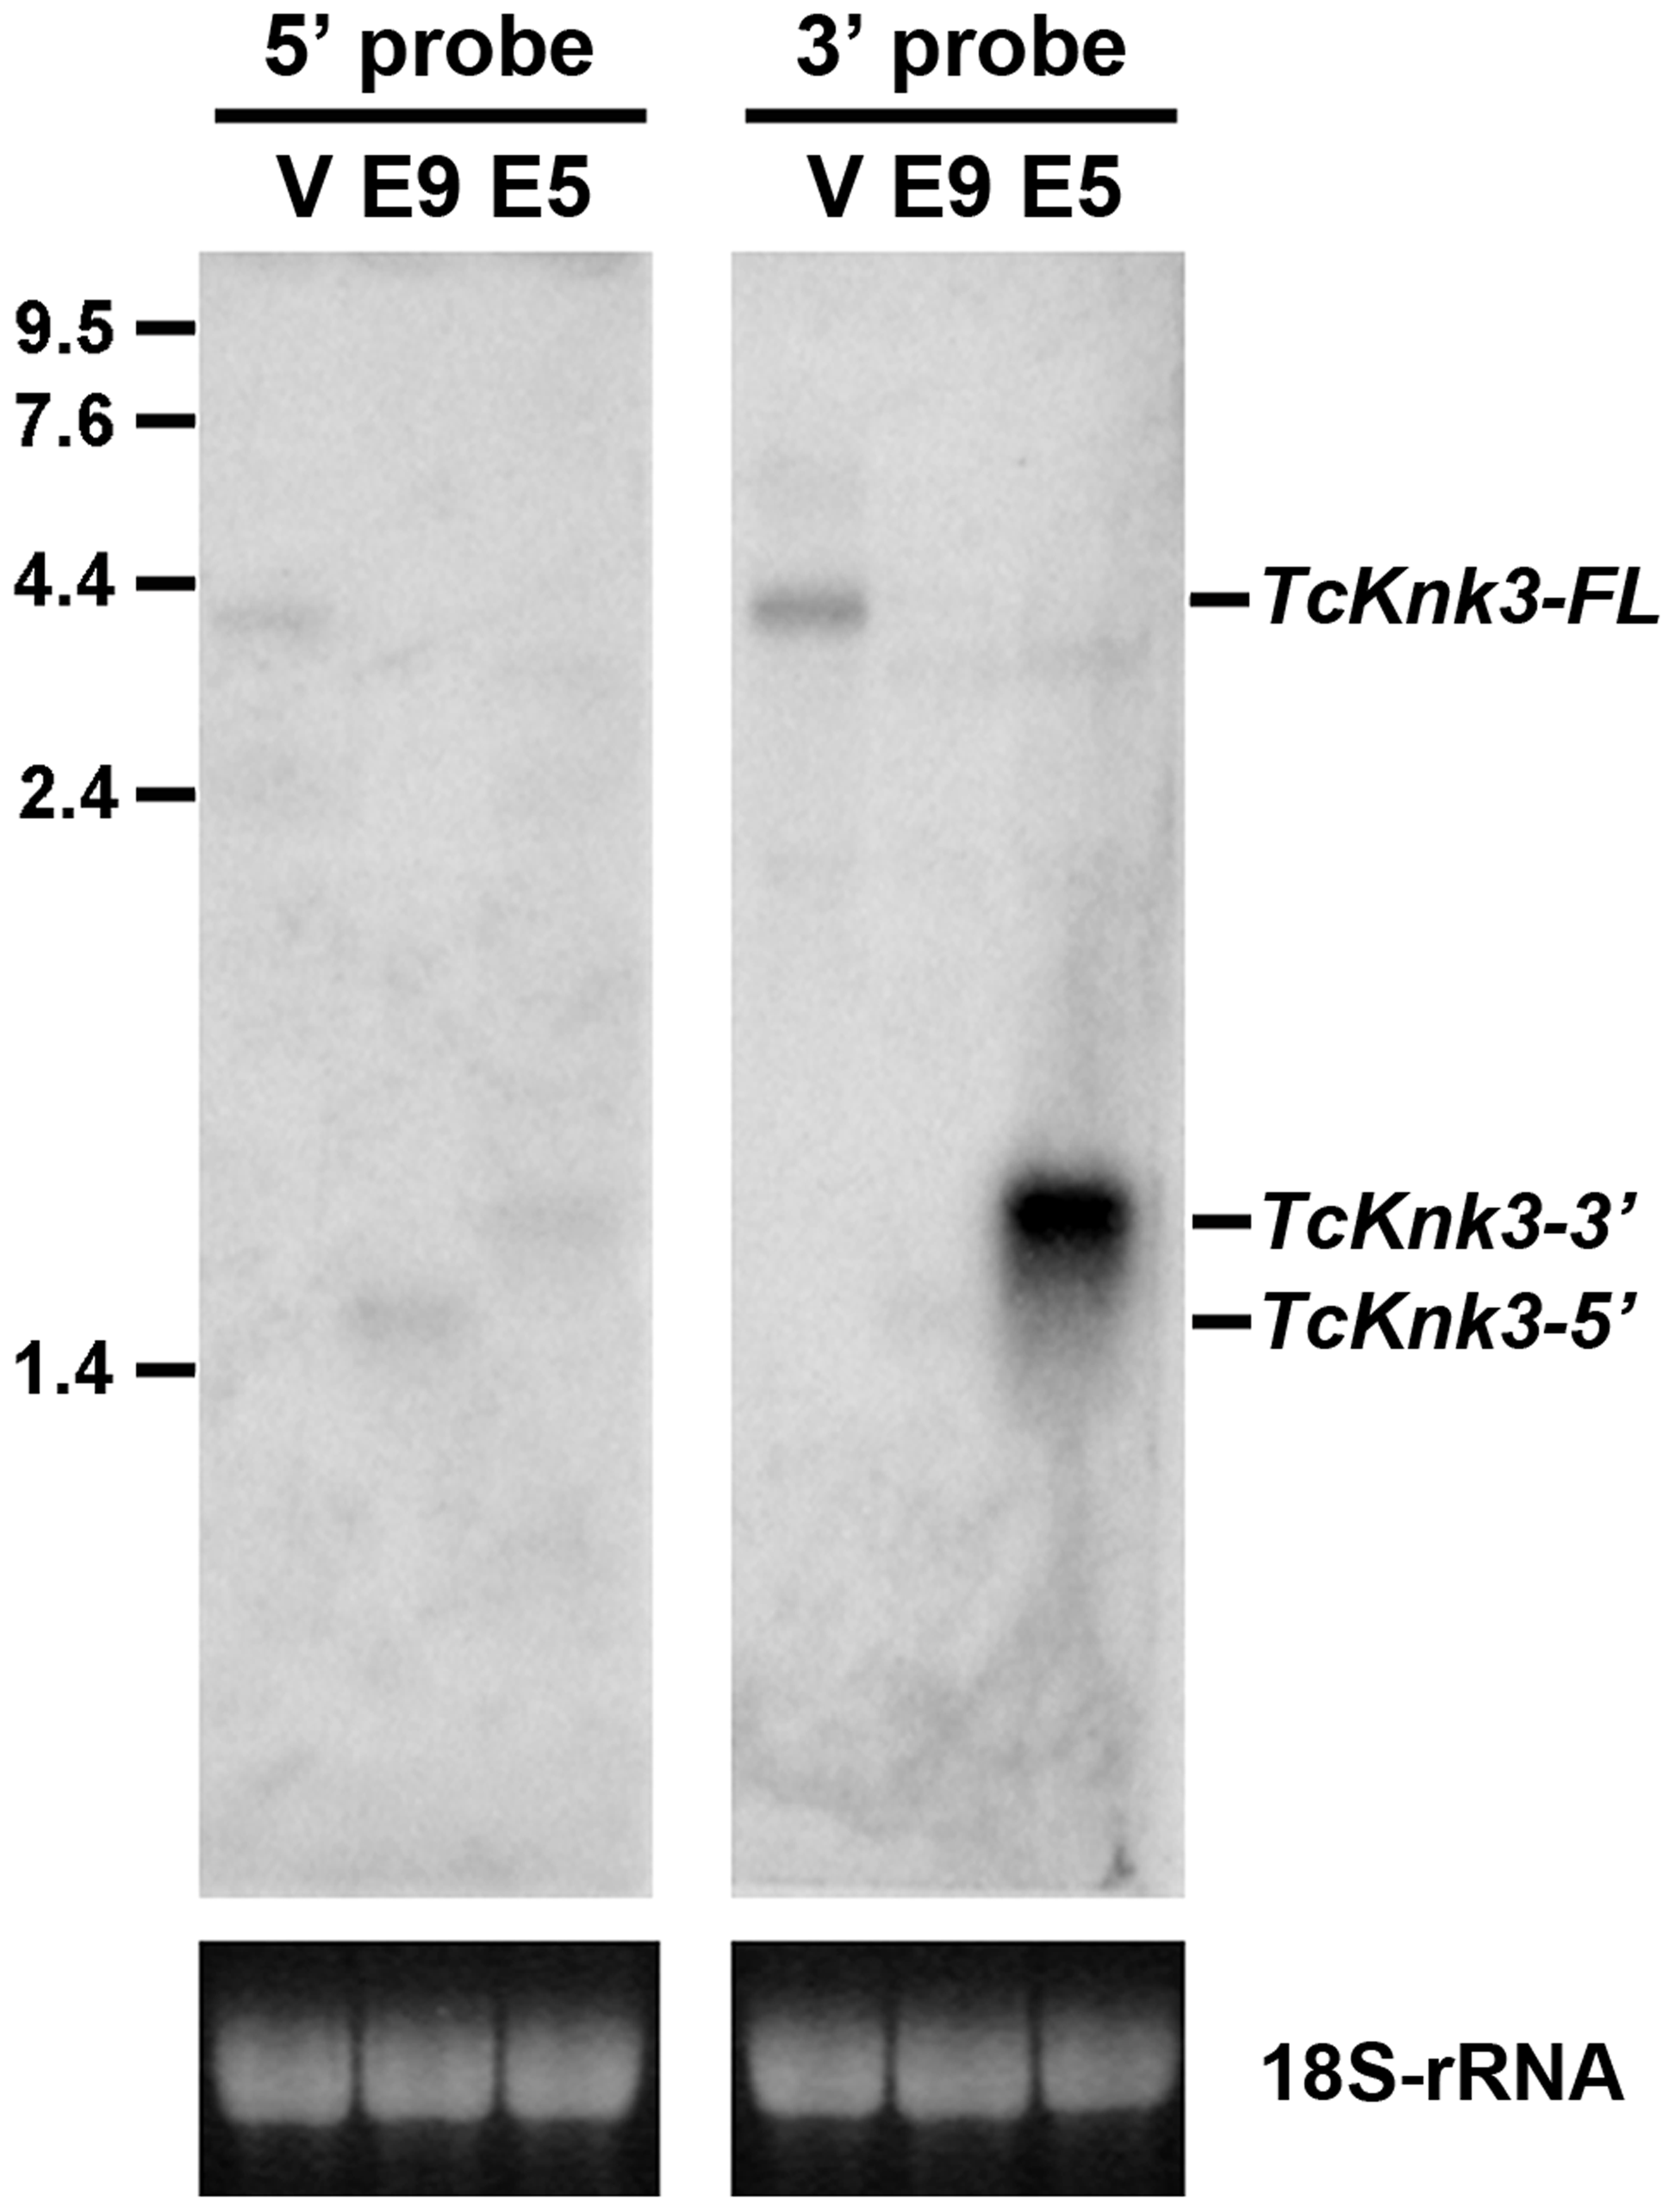 Northern blot analysis of <i>TcKnk3</i> transcripts using <sup>32</sup>P-labeled 5′-terminal and 3′-terminal probes.